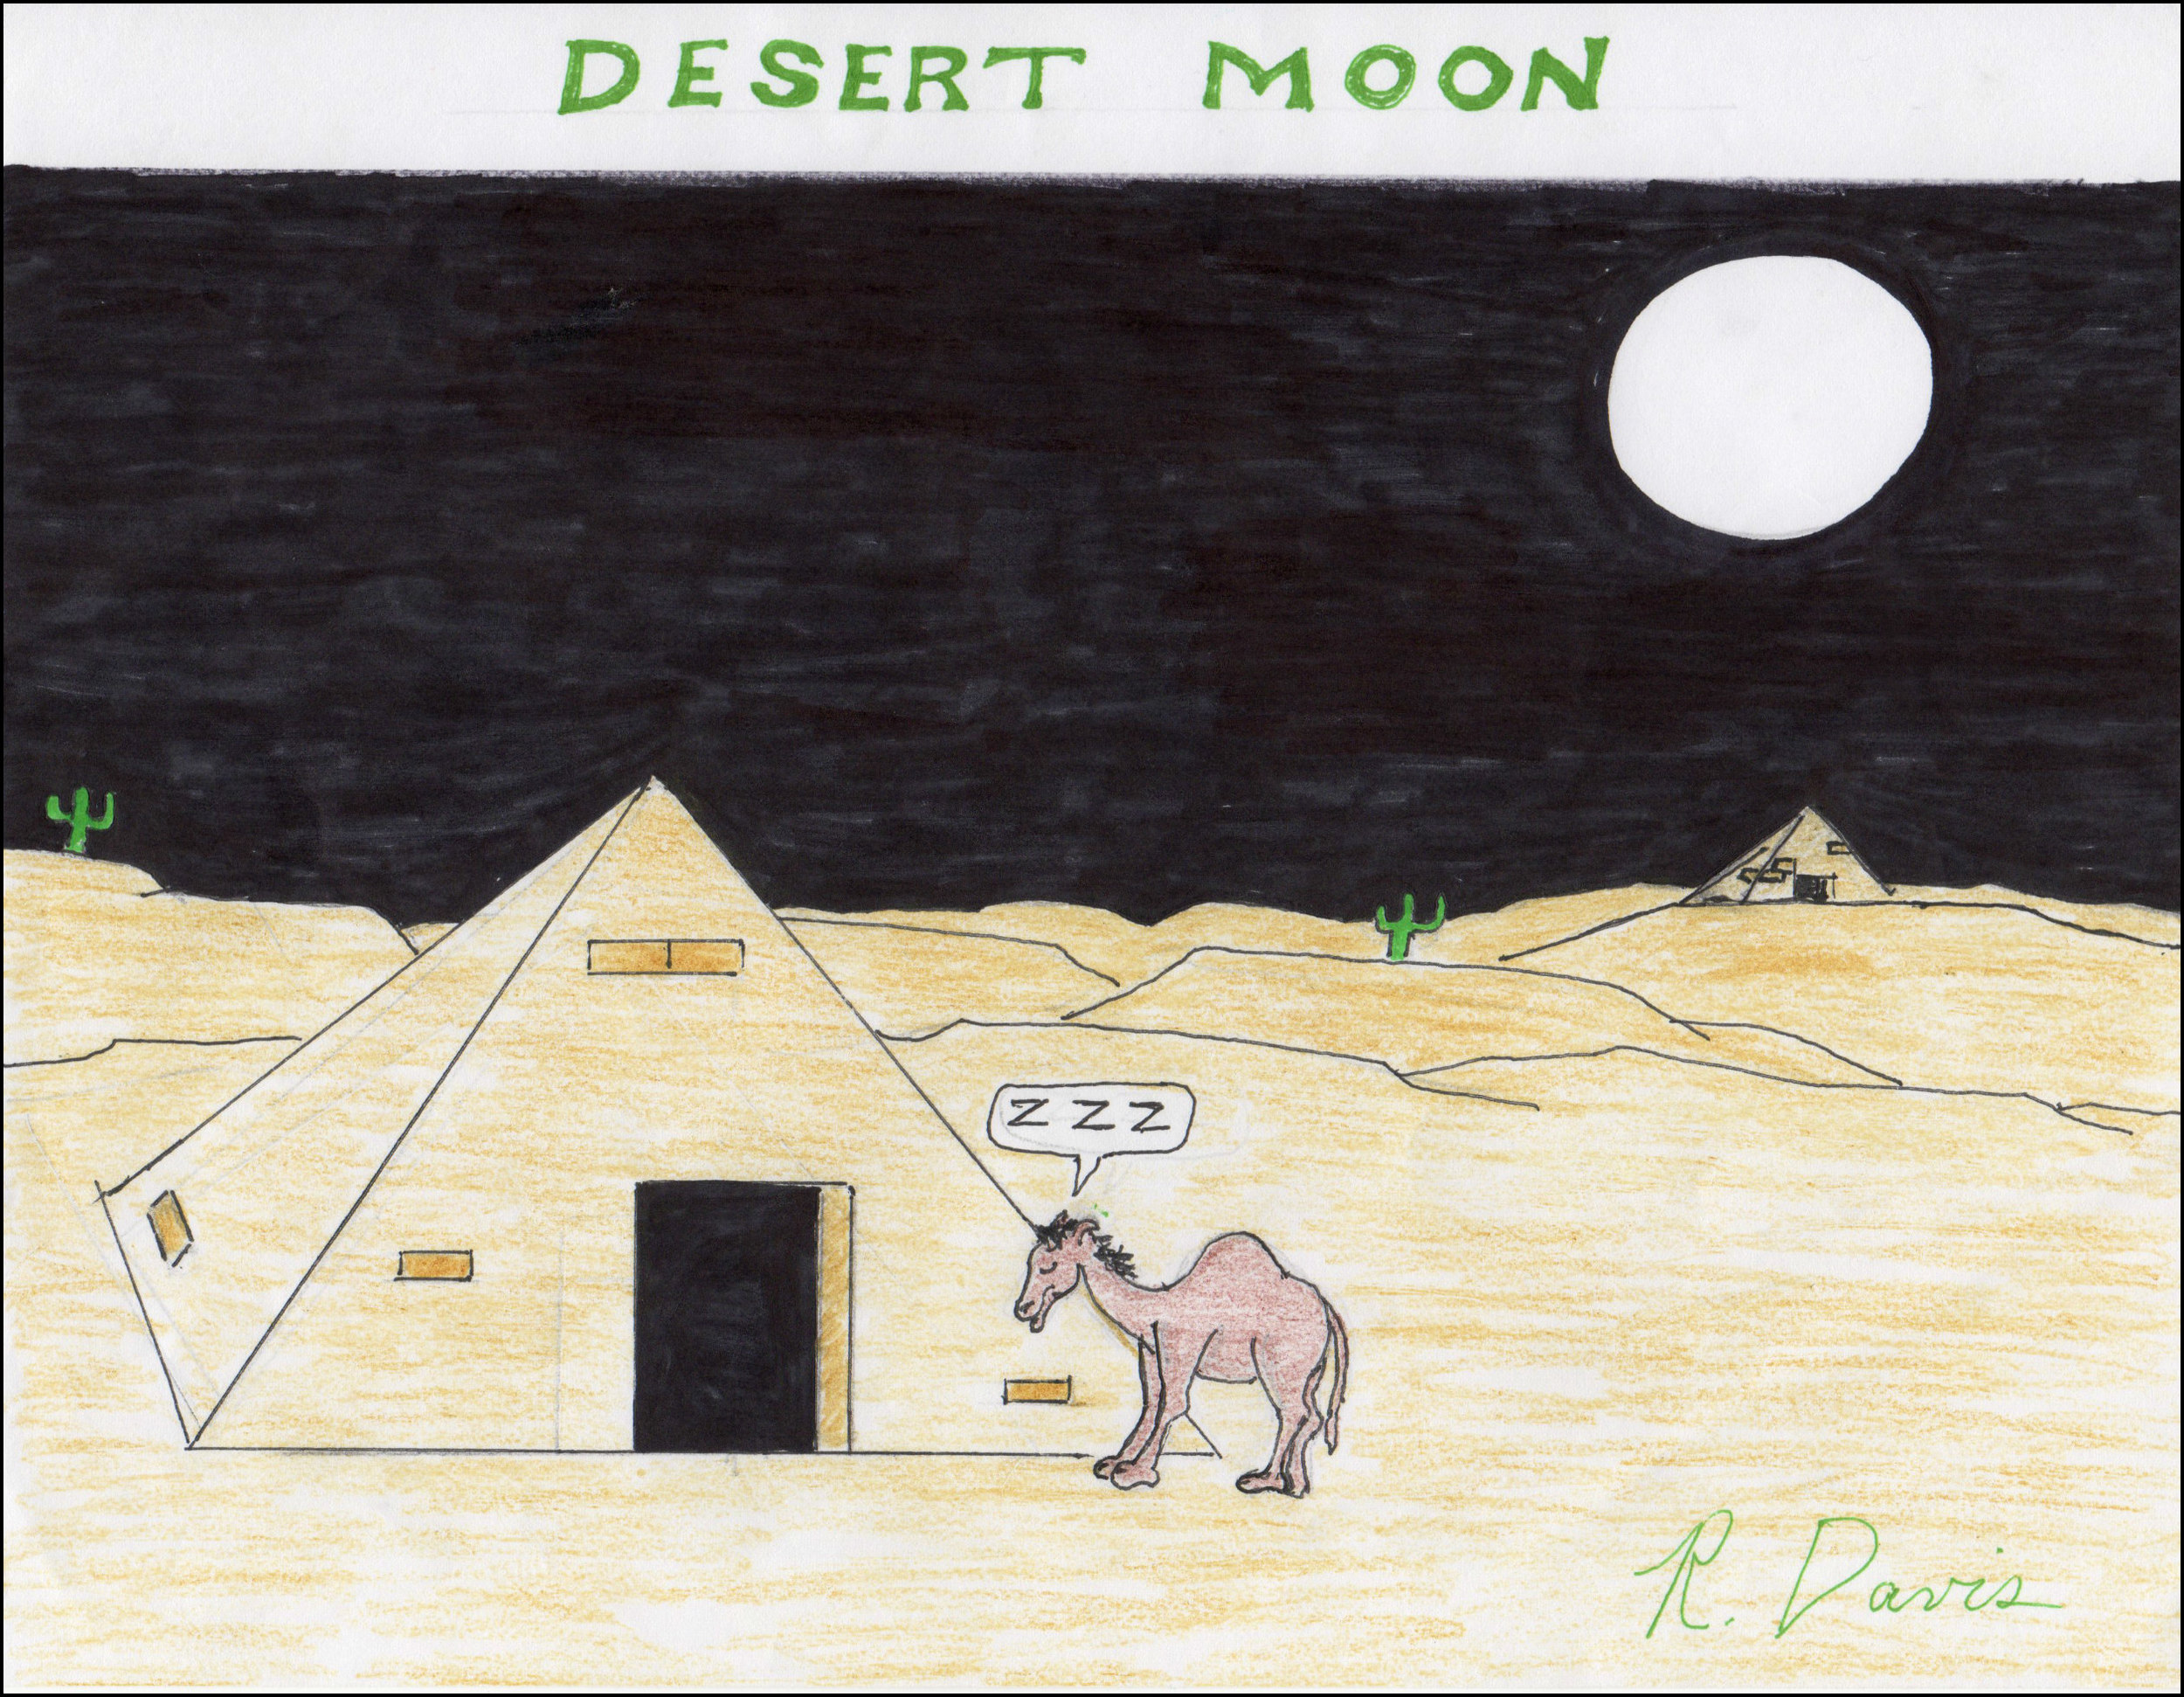 Desert Moon Ron Davis Markers on 8-1/2 x 11 paper - print $20